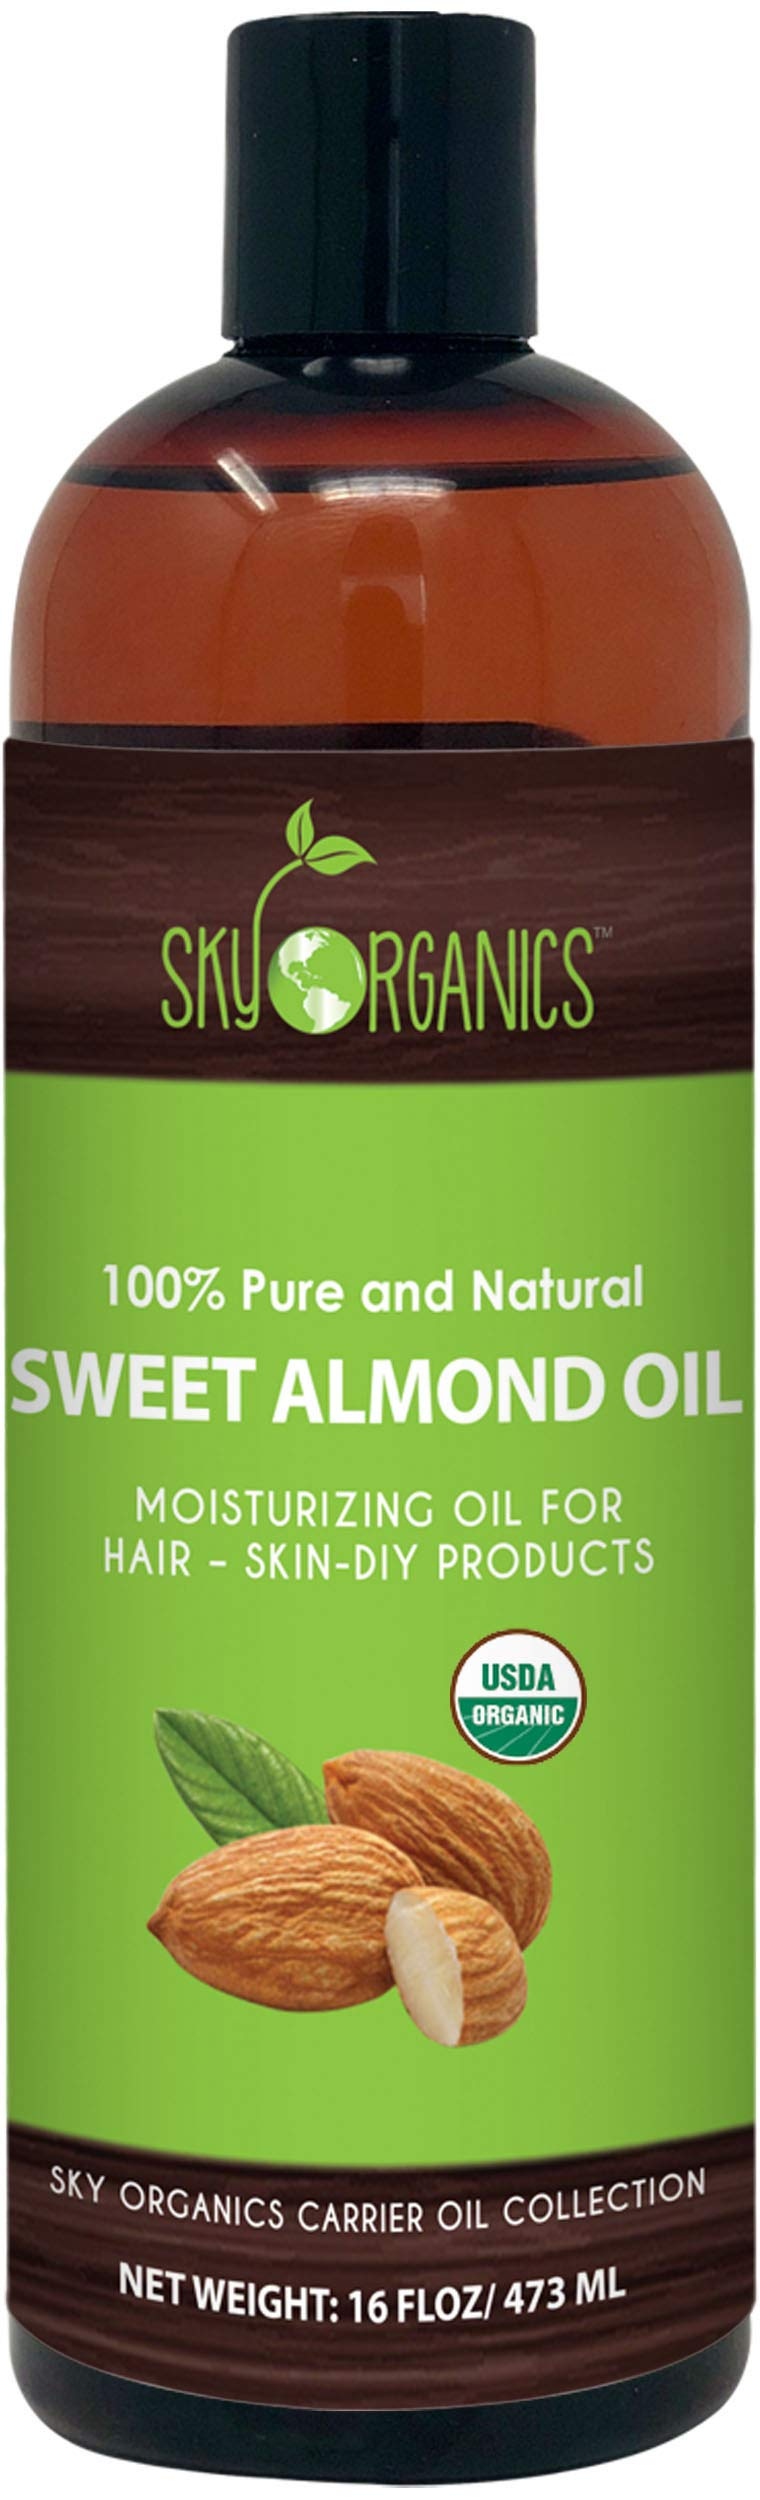 Sweet Almond Oil by Sky Organics 16oz- 100% Pure, Cold-Pressed, Organic Almond Oil. Great As Baby Oil- Anti- Wrinkles- Anti-Aging. Almond Oil- Carrier Oil for Massage.Bath Pearl & Flakes by Sky Organics